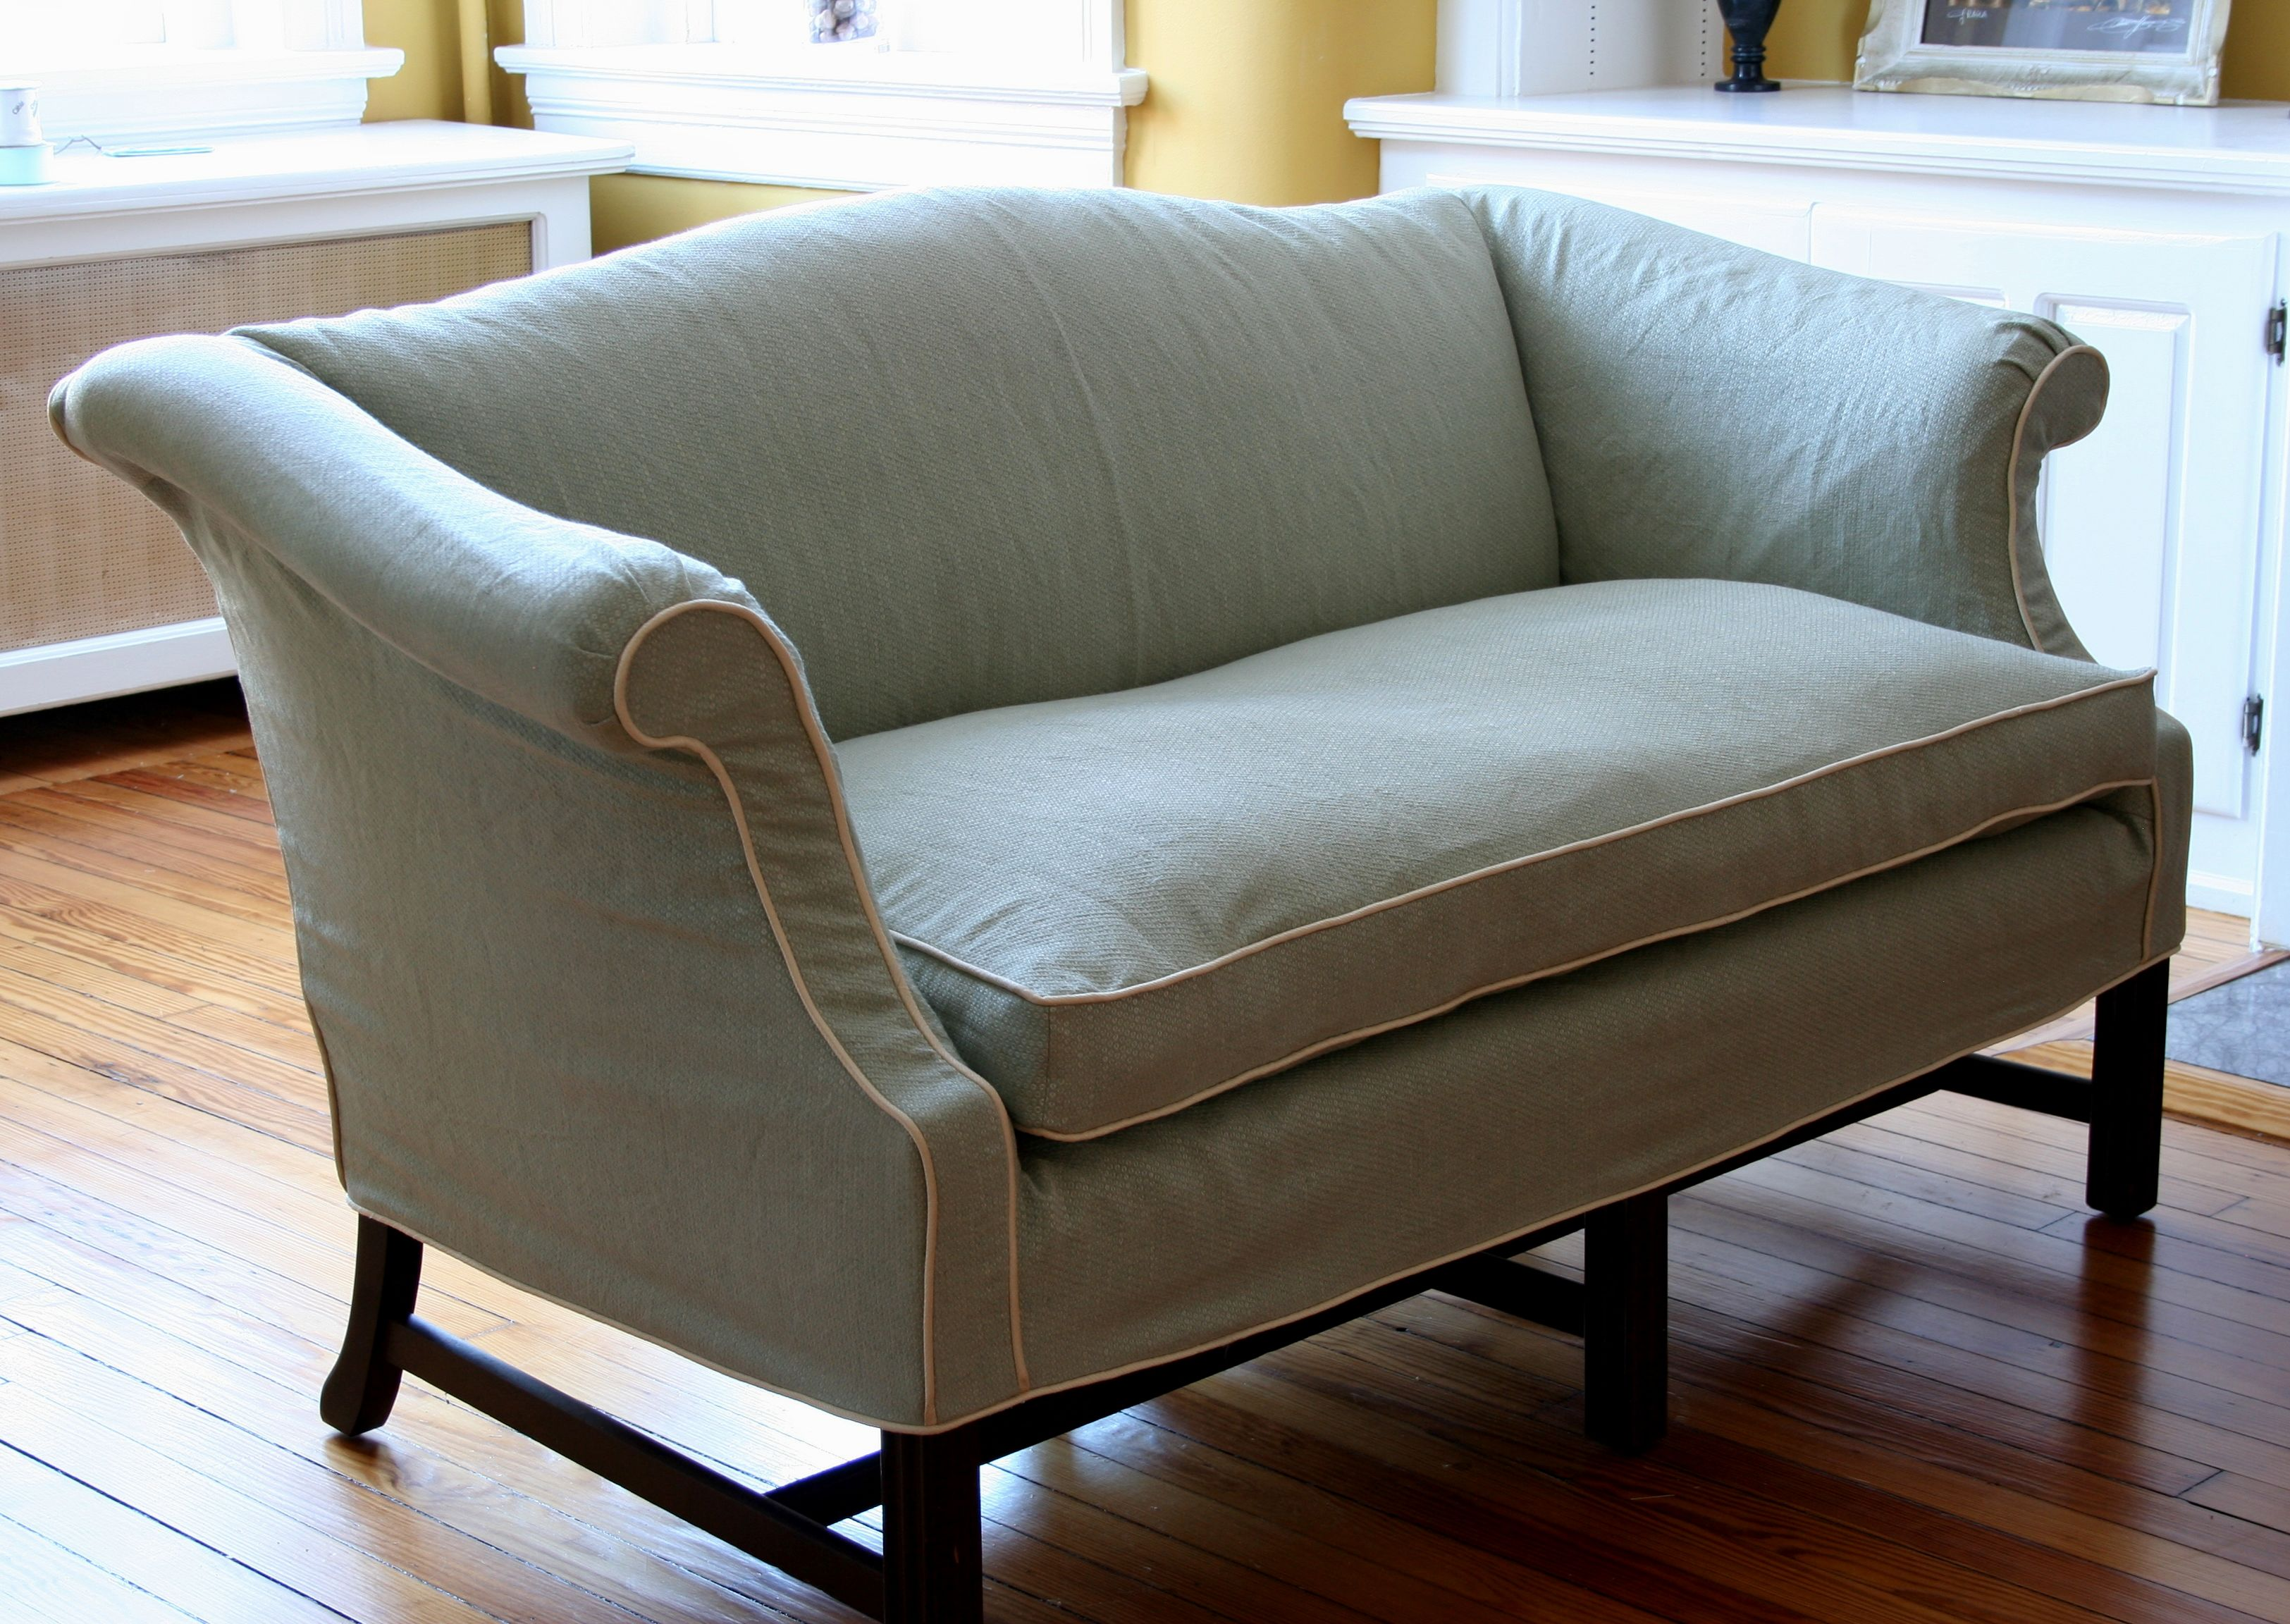 wonderful luxe sofa slipcover photo-Contemporary Luxe sofa Slipcover Model